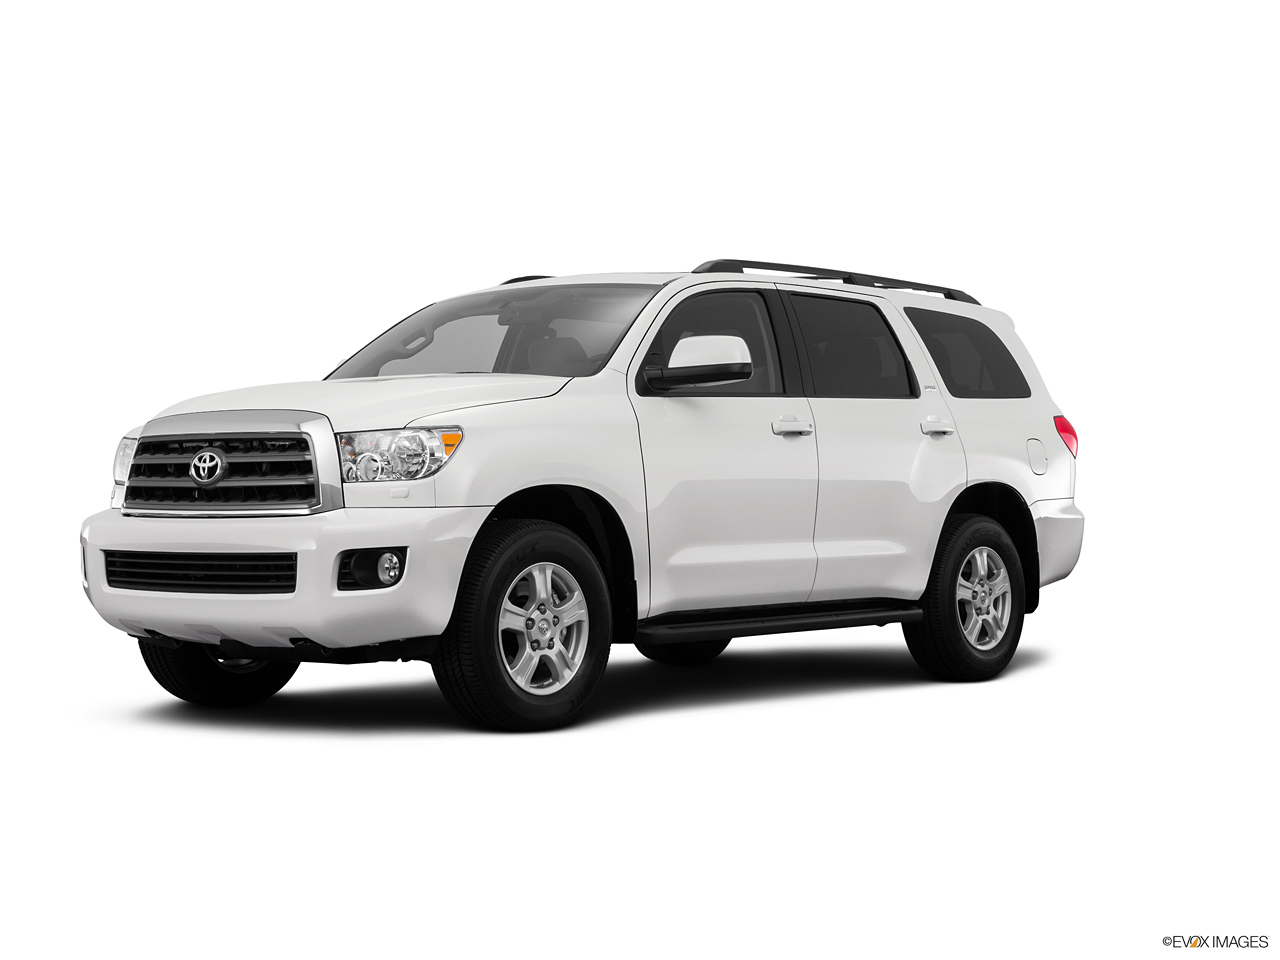 toyota sequoia 2017 5 7l sr5 moon roof in saudi arabia new car prices specs reviews photos. Black Bedroom Furniture Sets. Home Design Ideas